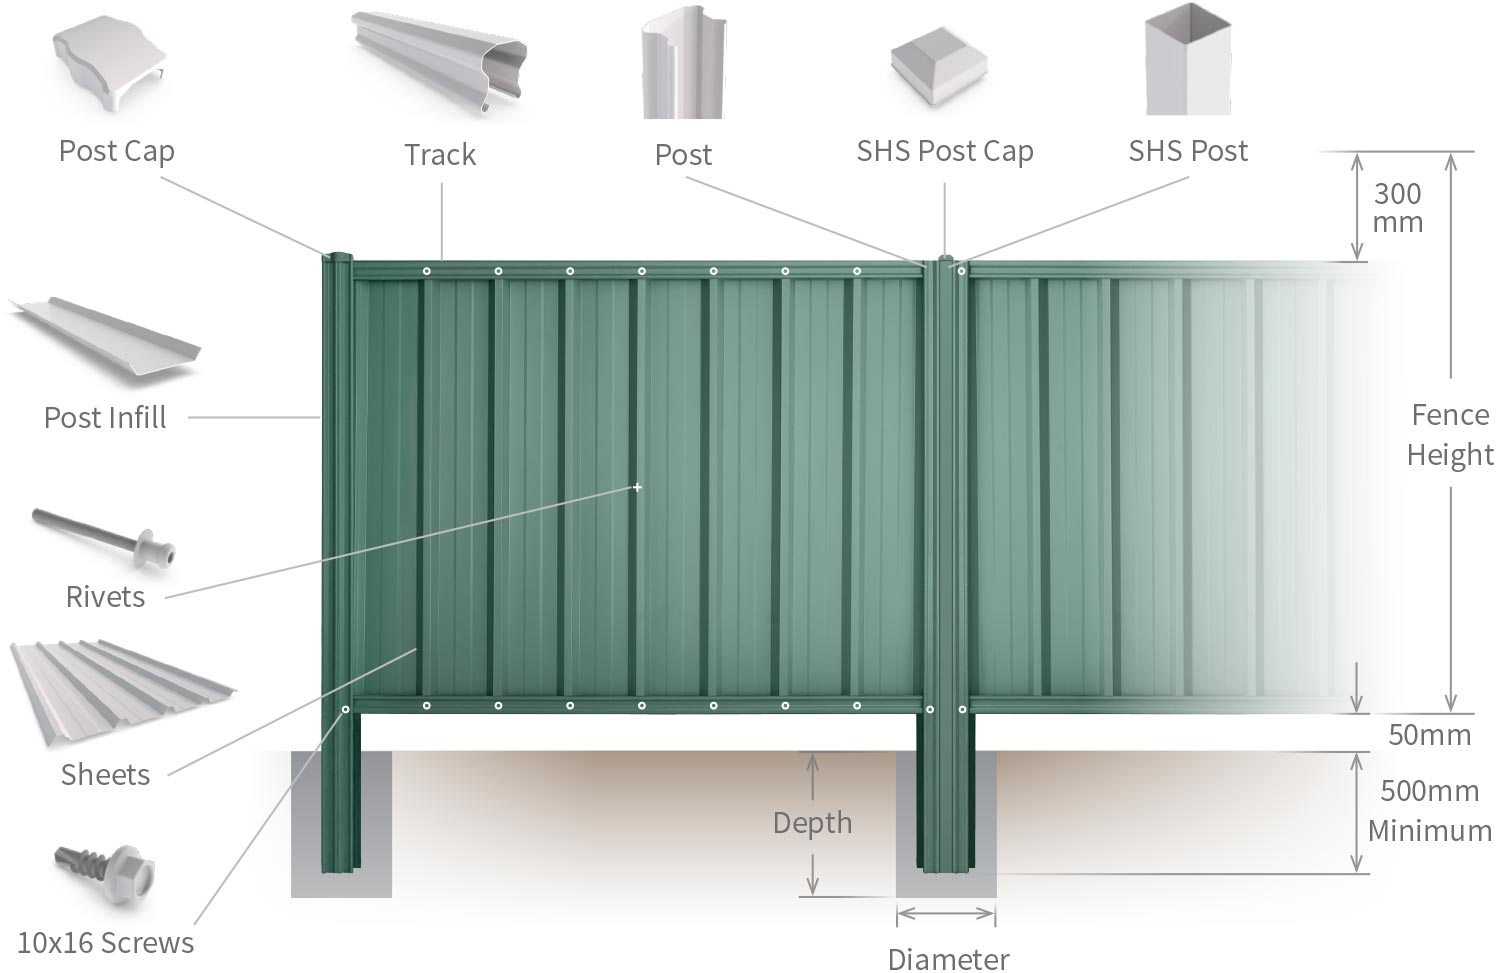 Fencing Fences Fence Cyclonic Profile Accessories